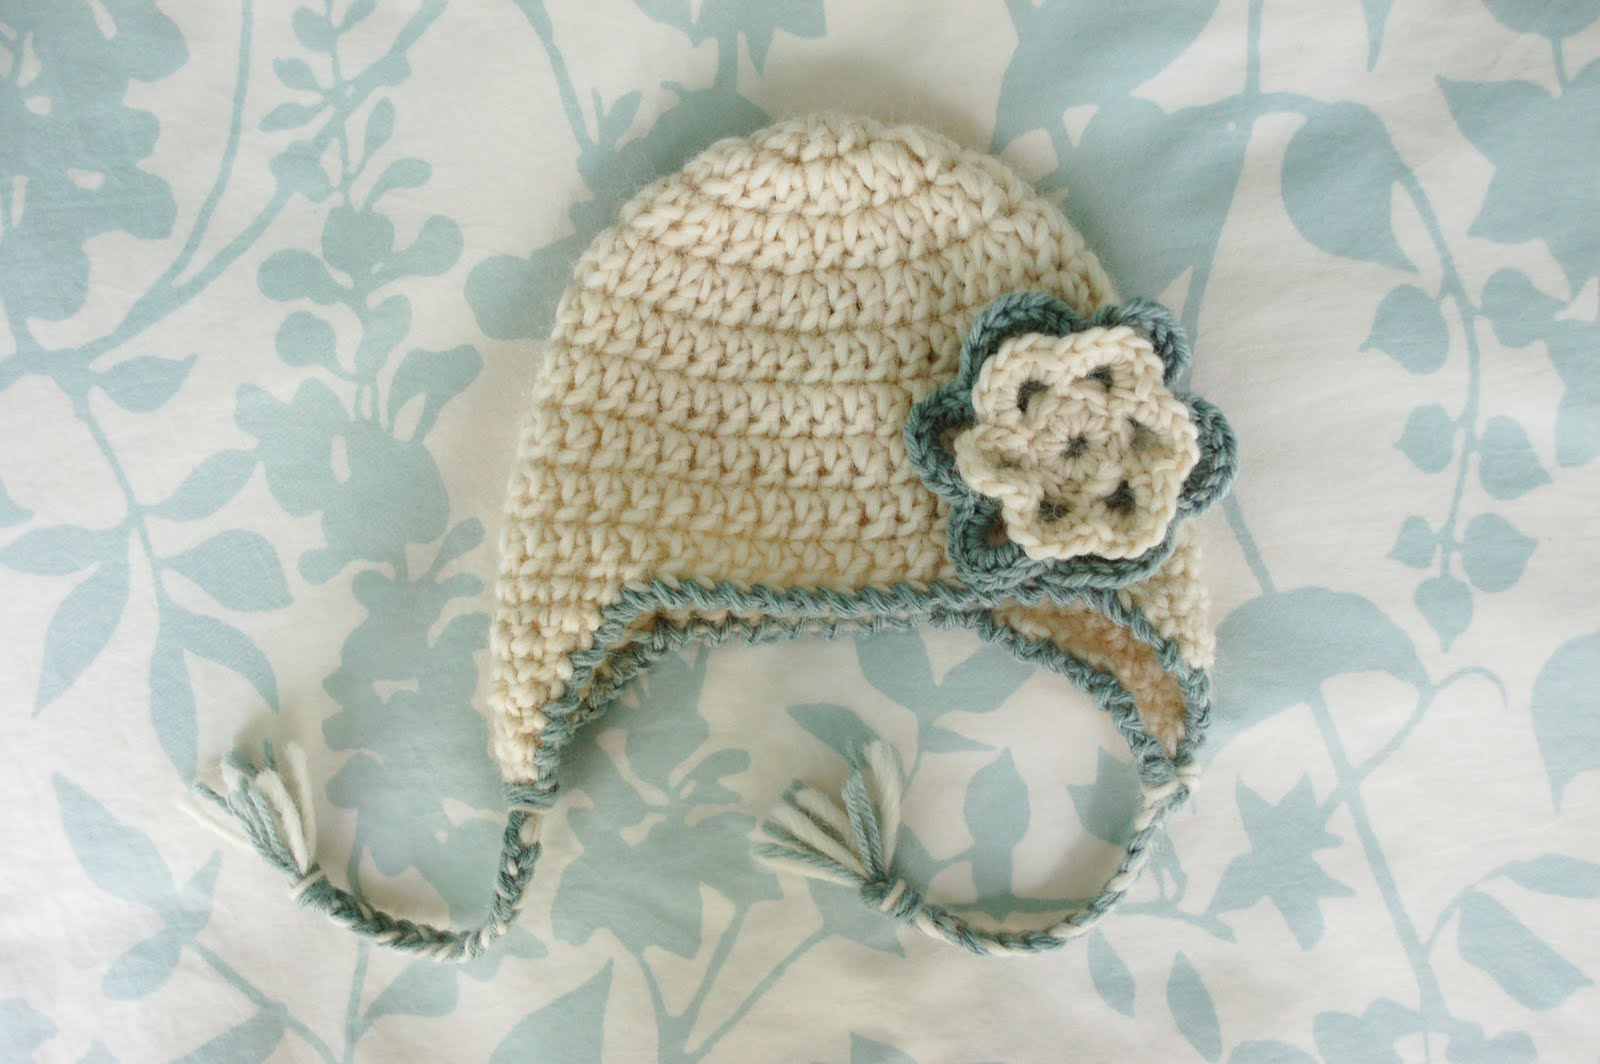 Crochet Pattern For Baby Hat With Ears : Alli Crafts: Free Pattern: Baby Earflap Hat - Newborn